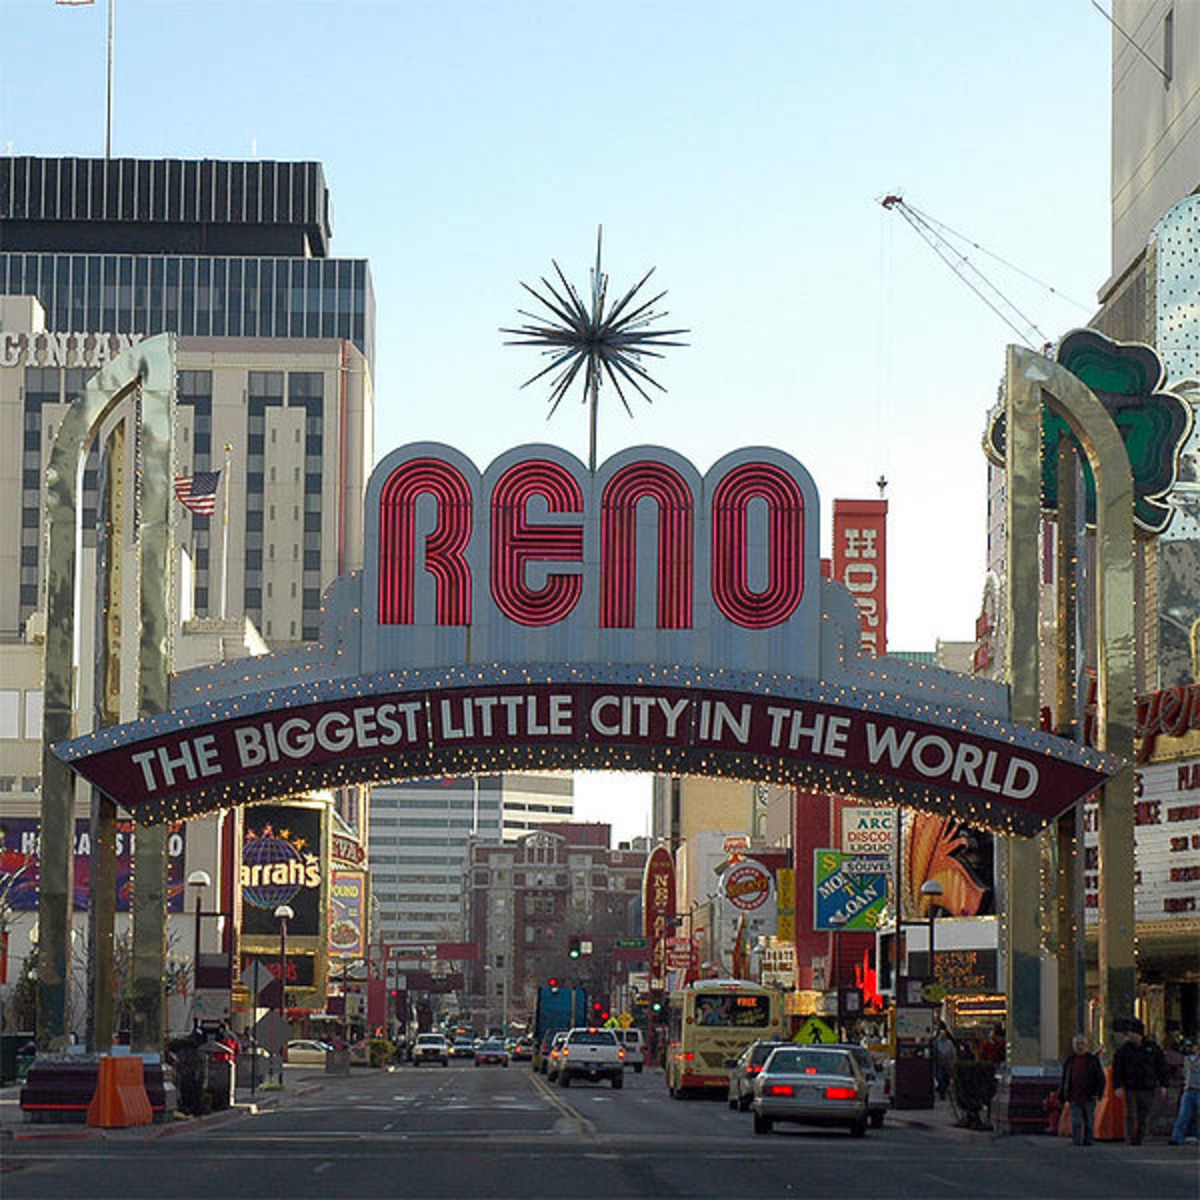 Business Growth in Reno, Nevada